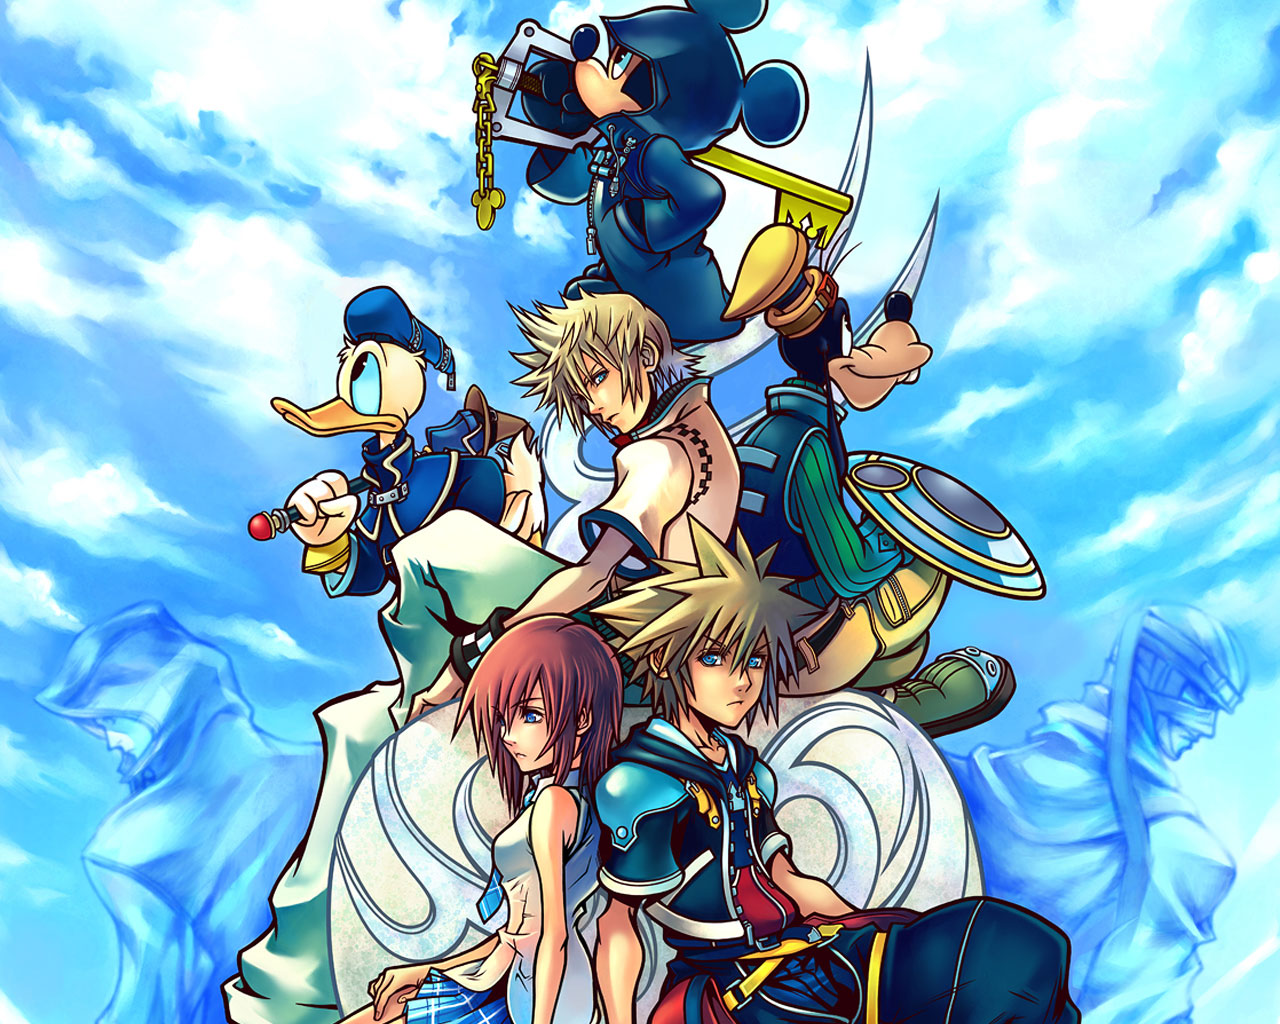 Kingdom Hearts Wallpaper 12801024 123321 HD Wallpaper Res 1280x1024